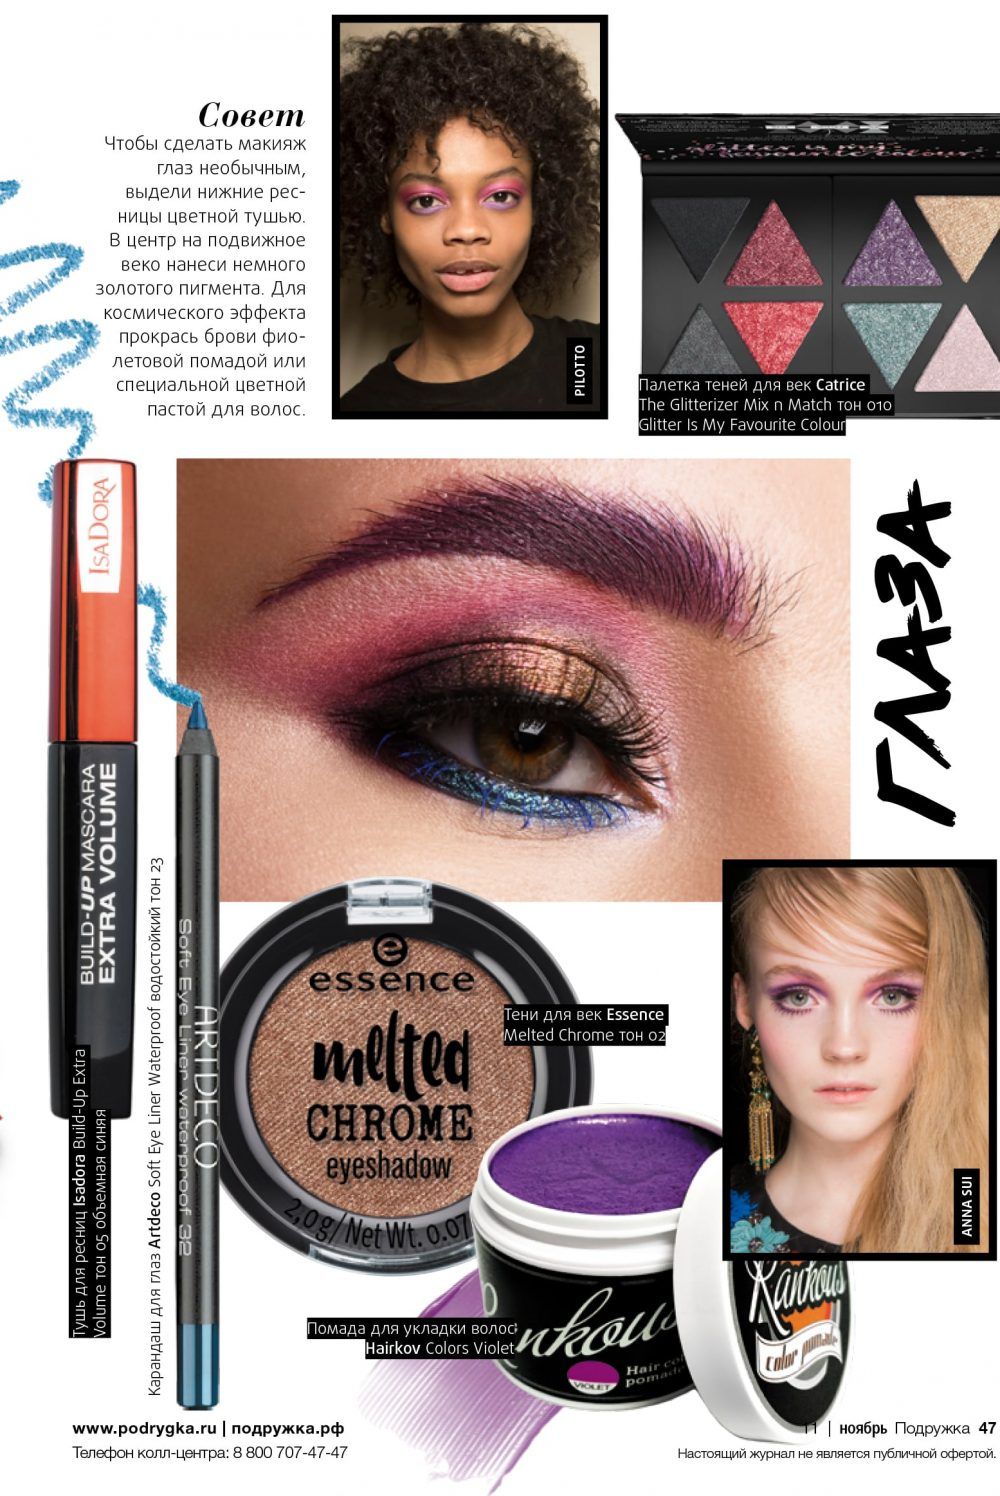 11_Podruzka_46-48_Makeup_Trends_2 (1)-2-min